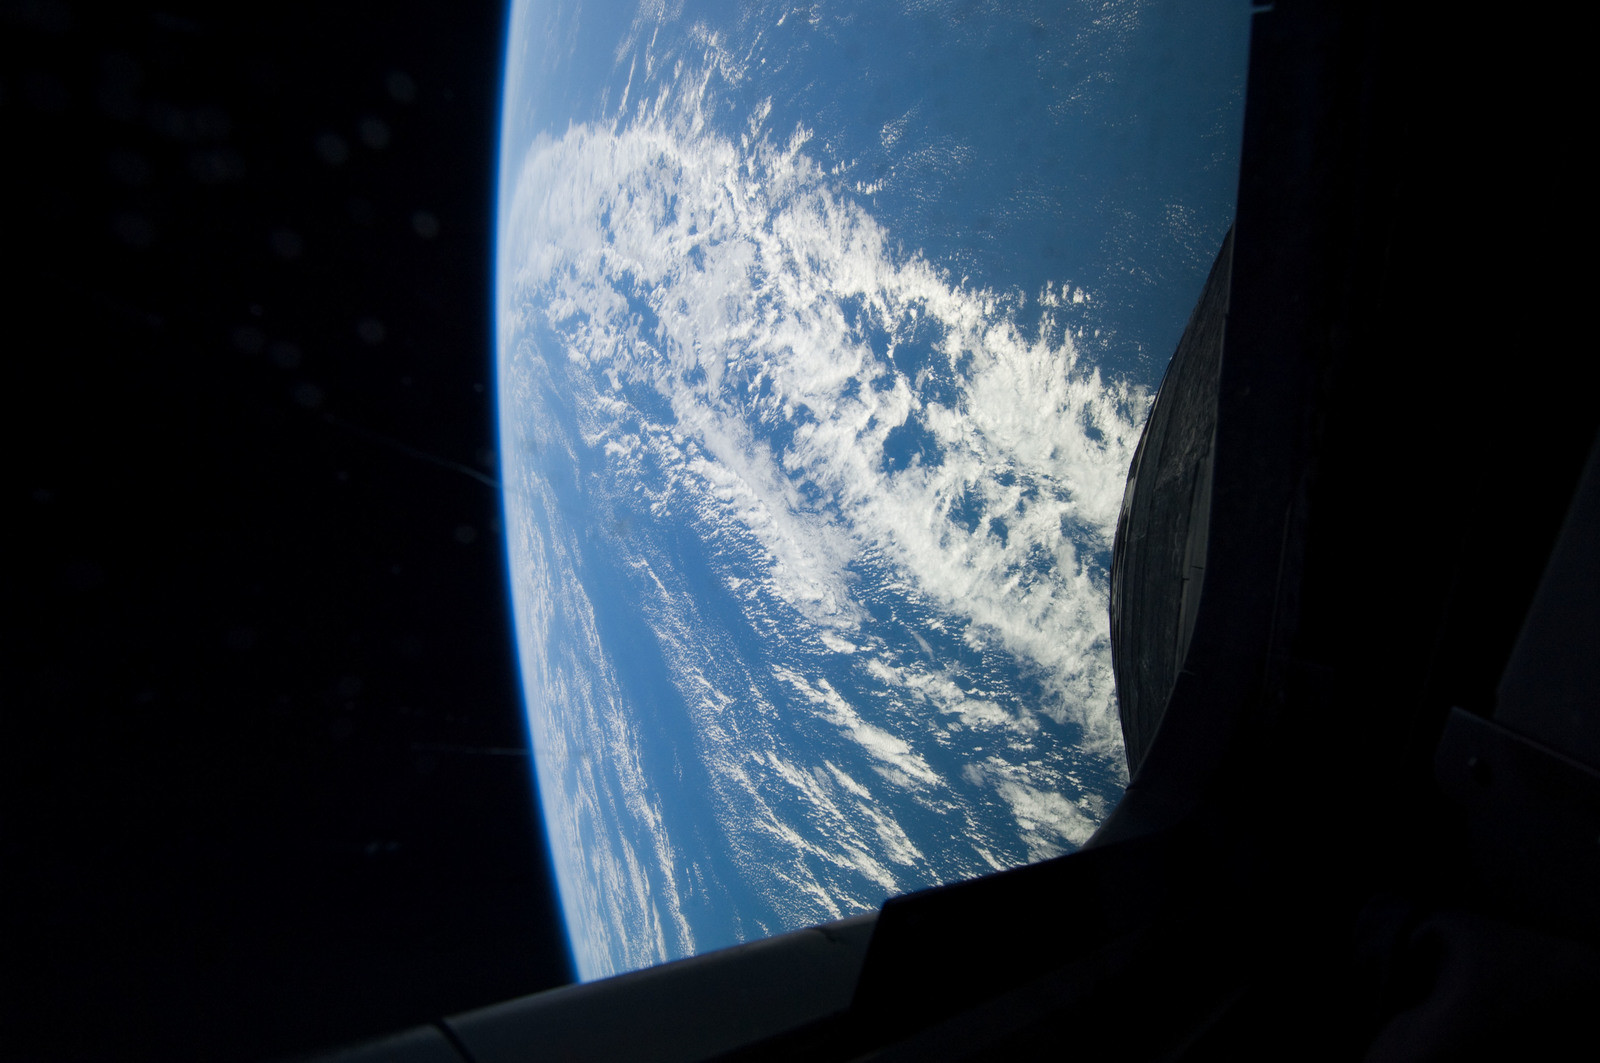 s133E006949 - STS-133 - Earth Observation taken by the STS-133 crew